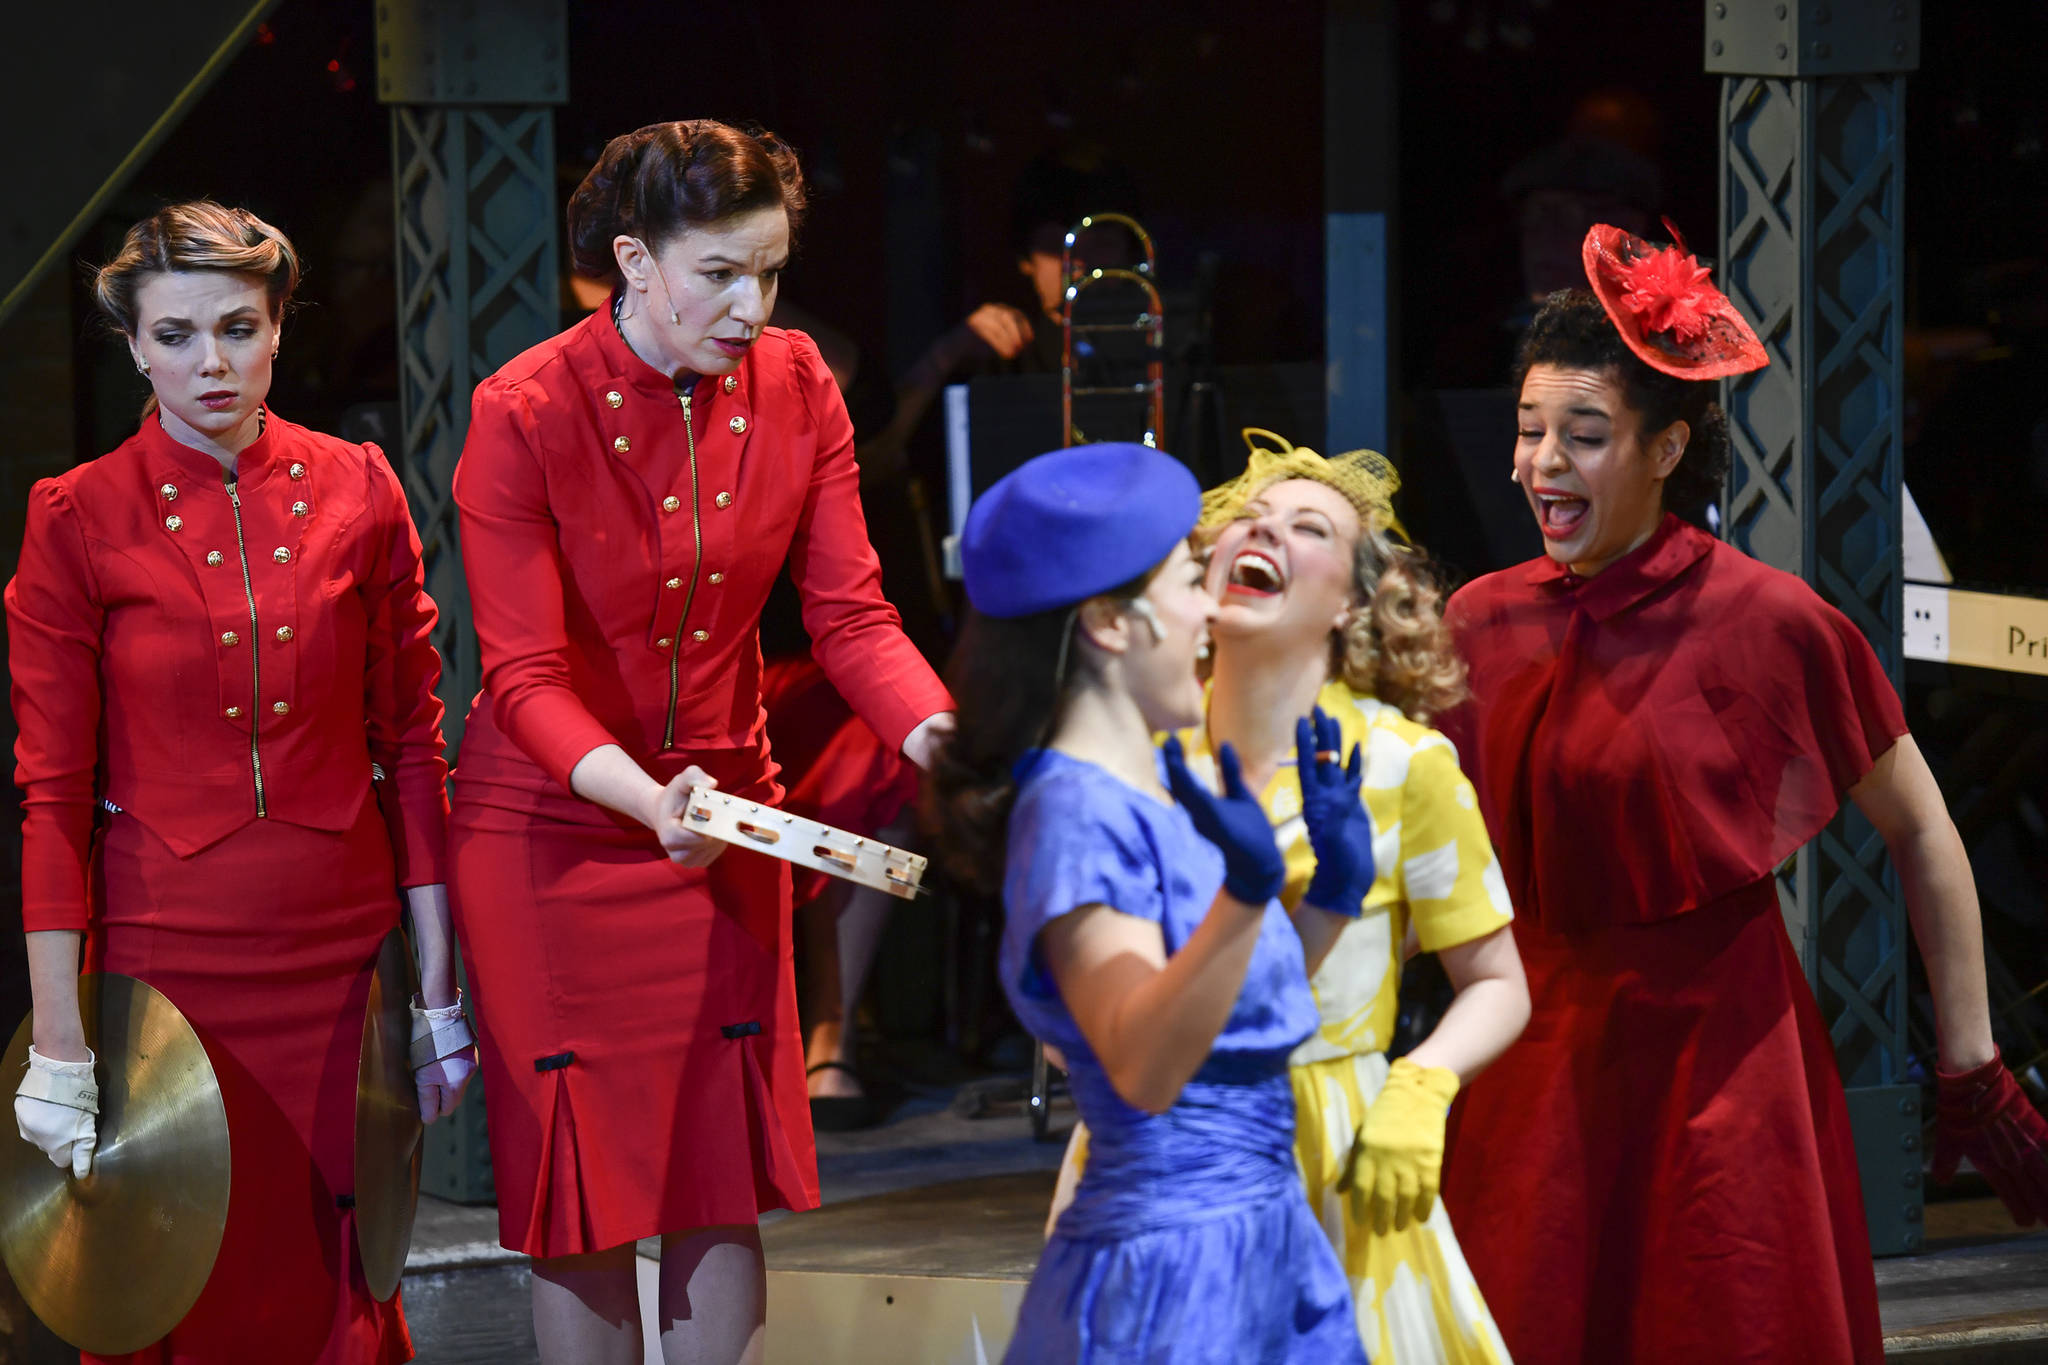 """A performance of """"Guys and Dolls"""" at Perseverance Theatre on Thursday, March 14, 2019. (Michael Penn 